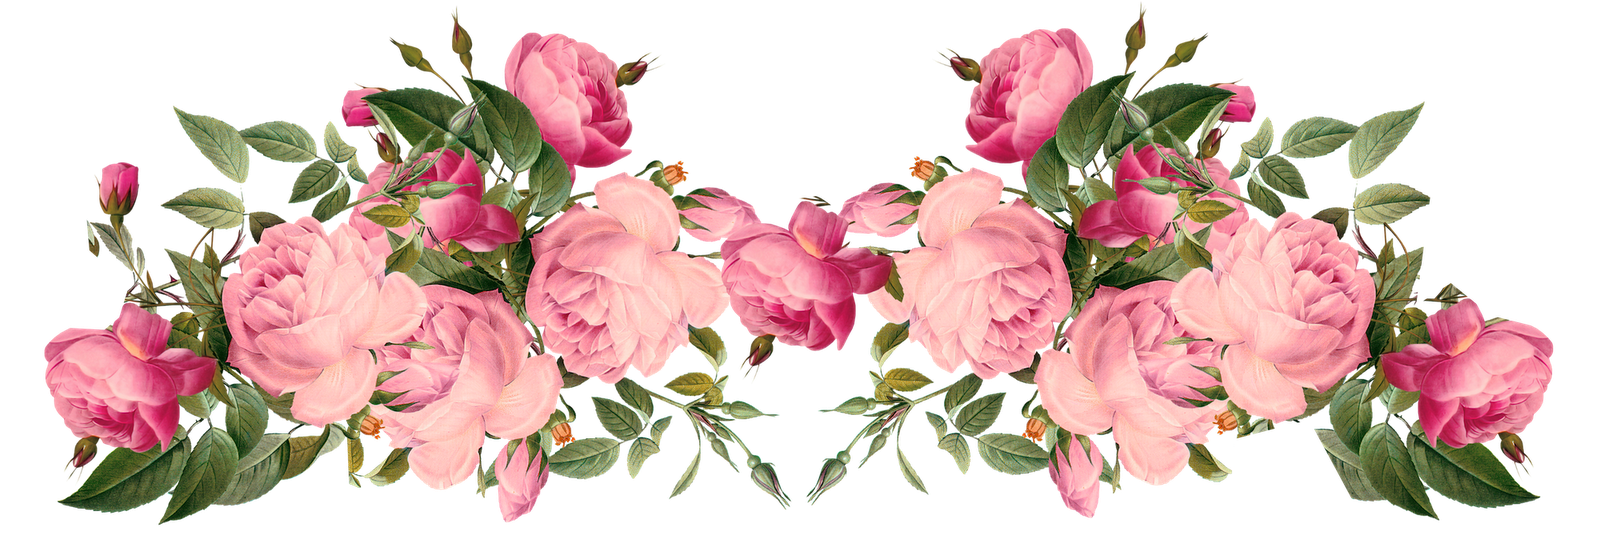 Free clipart pink rose hair peice w no background